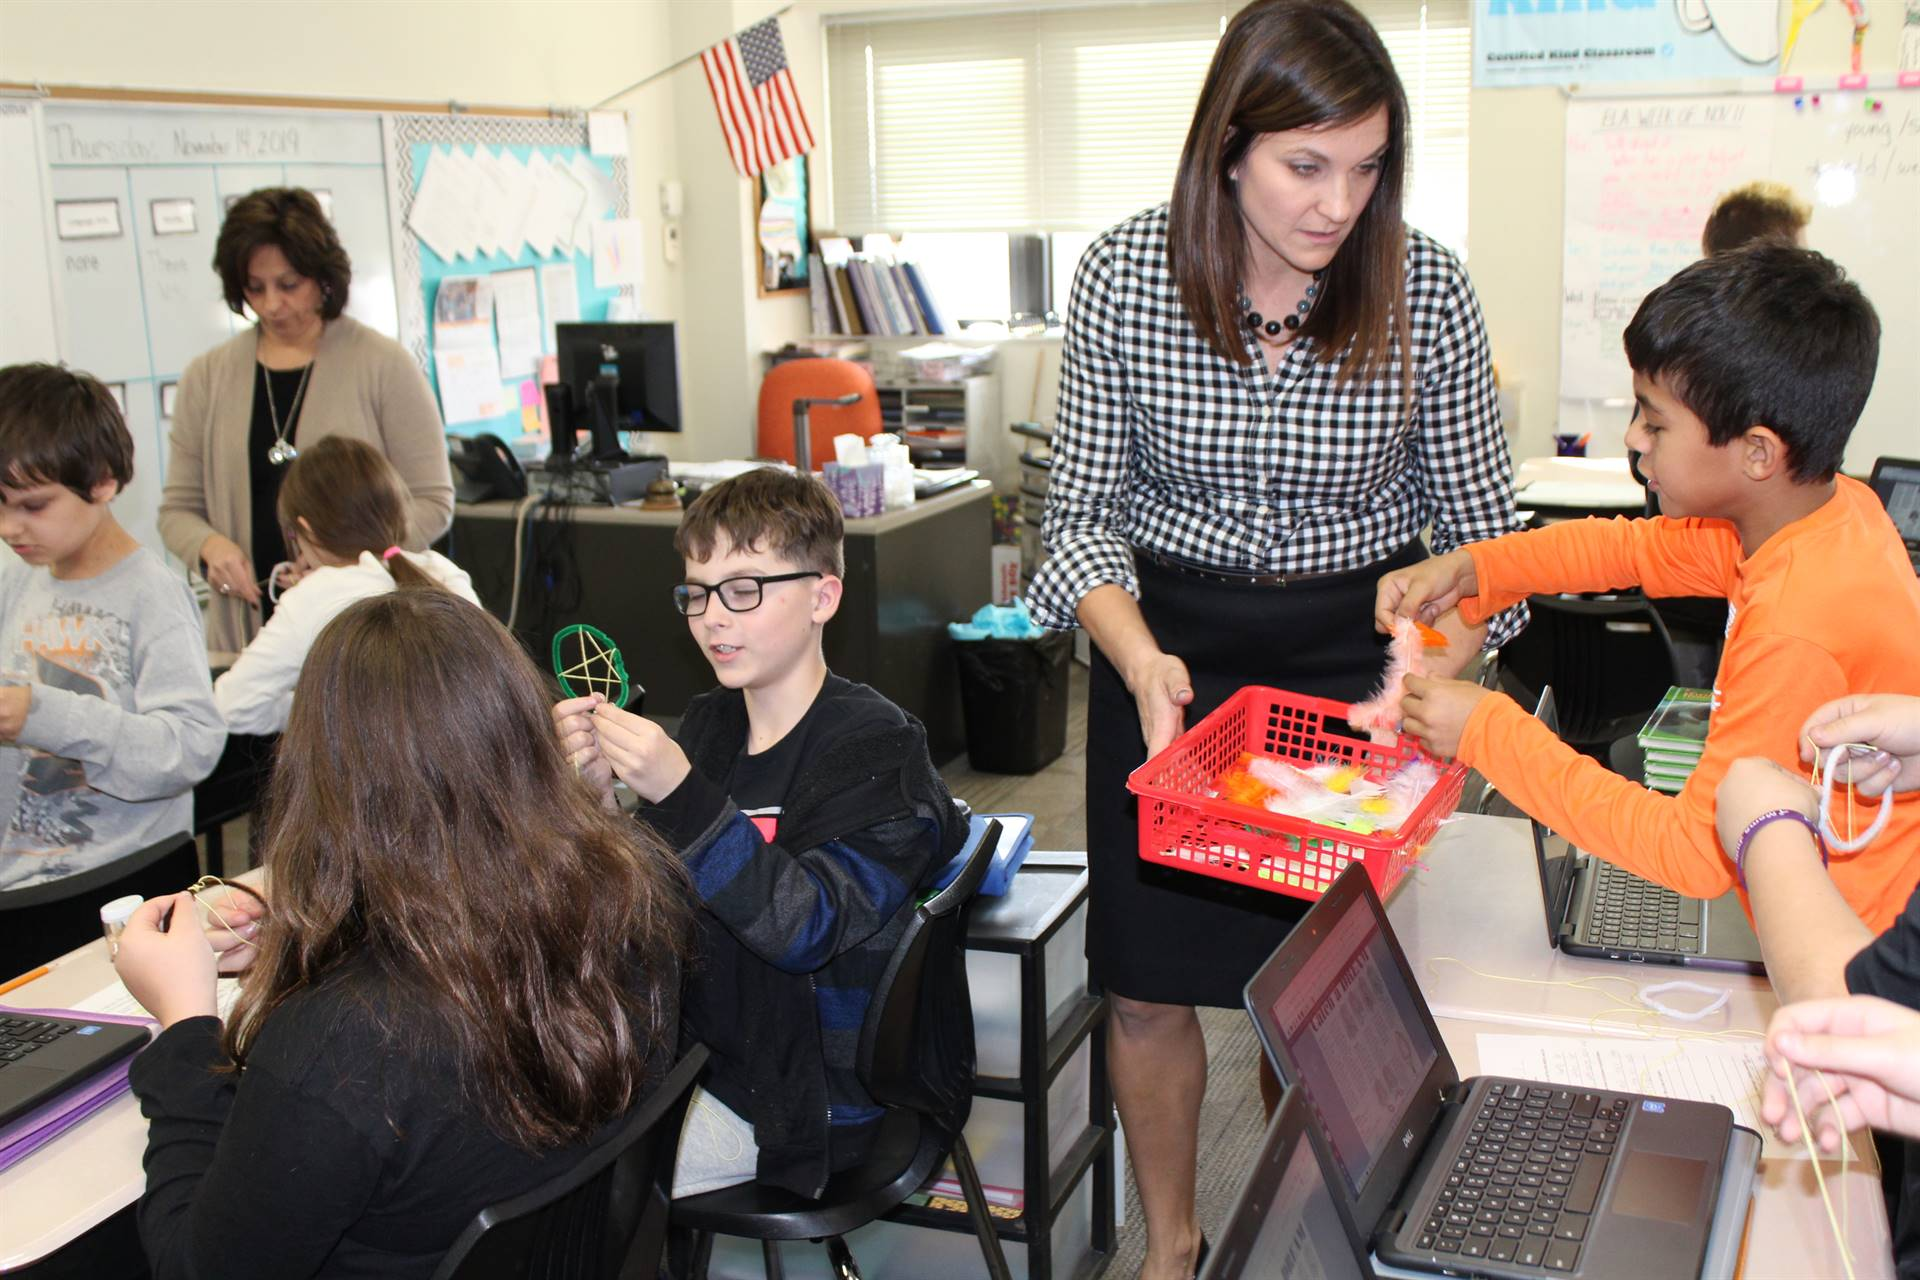 Mrs. Romito holding a basket of materials